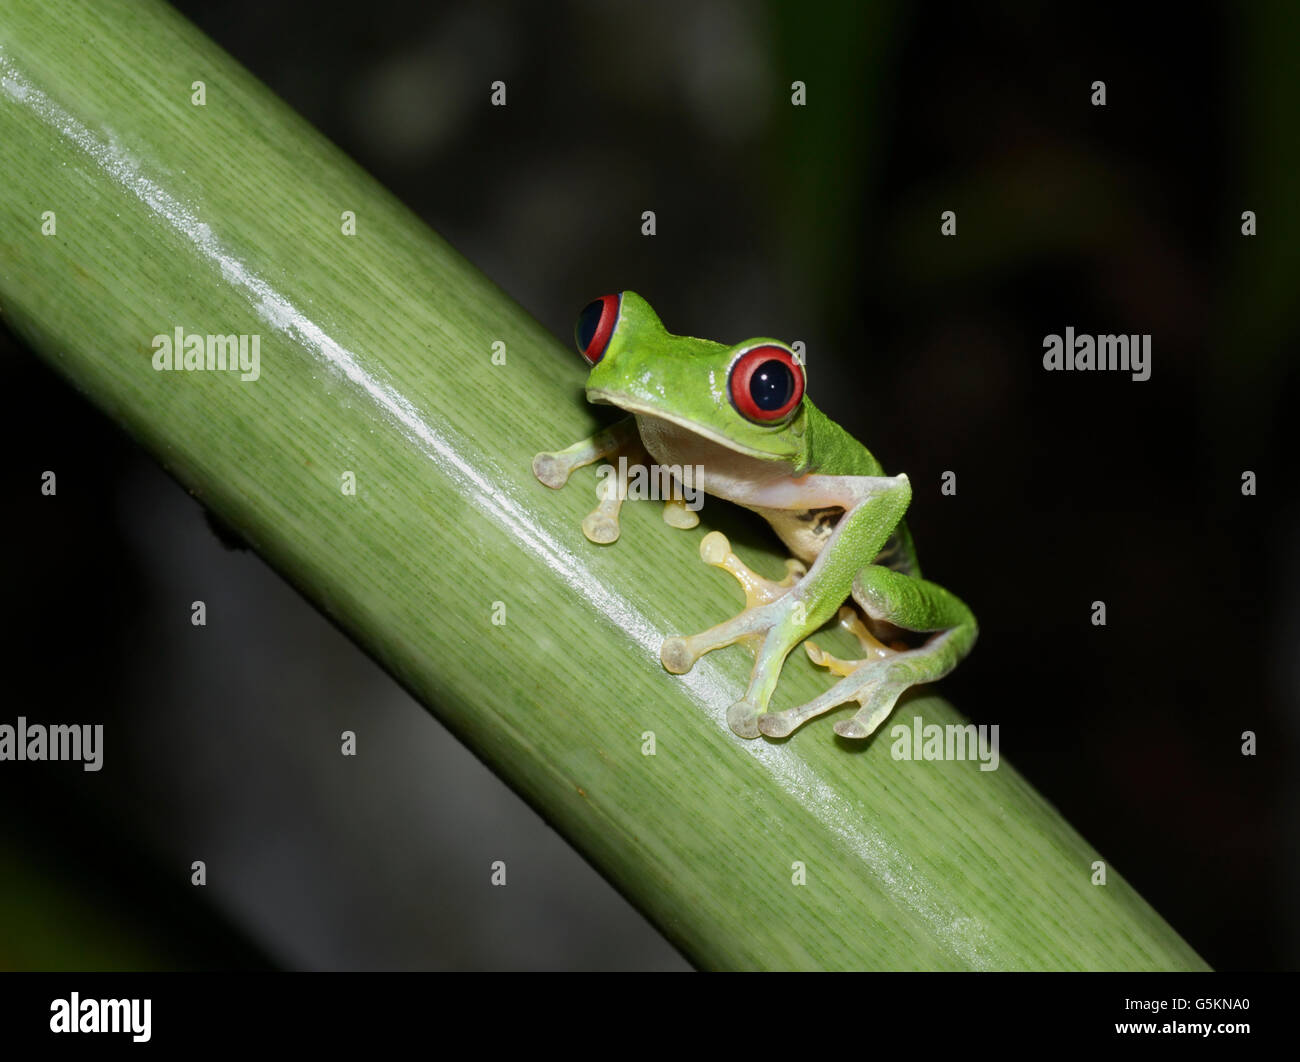 Red-eyed tree frog, Agalychnis callidryas, Pacific slope variety Stock Photo